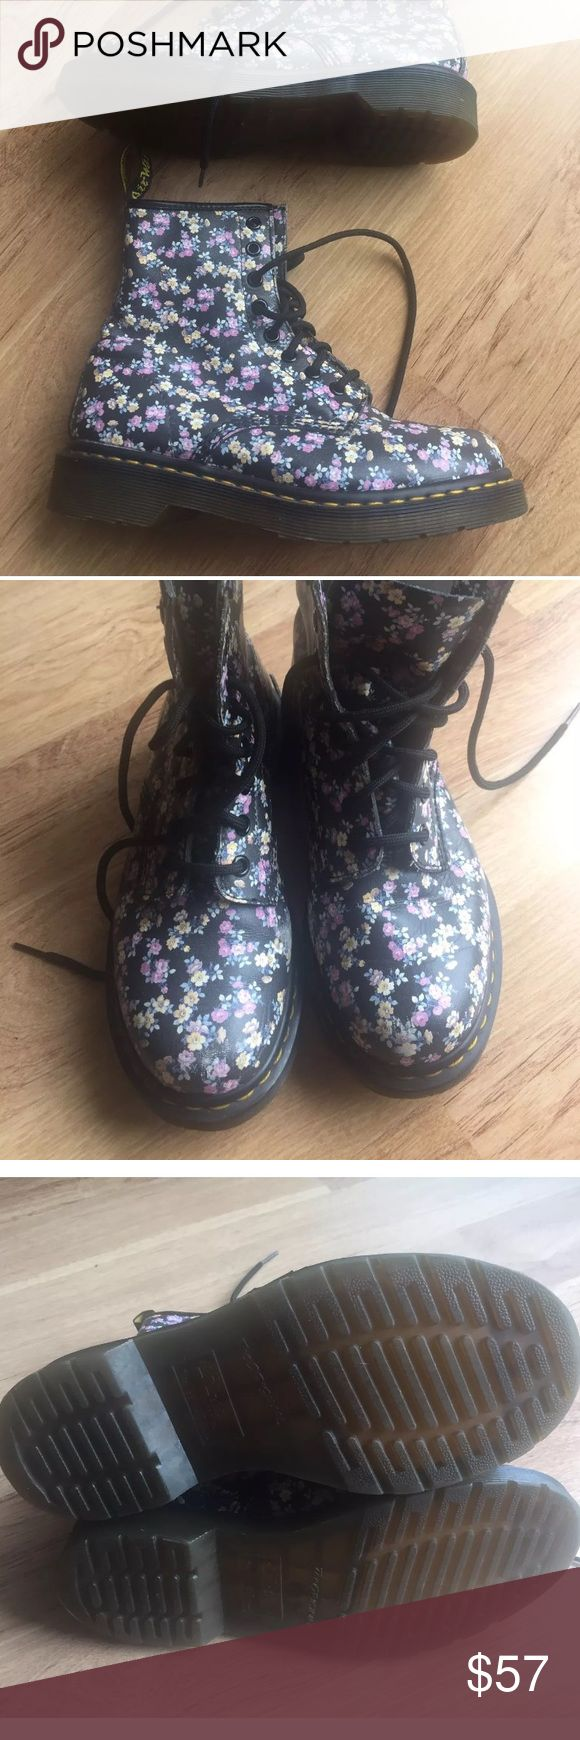 Dr. Martens Floral Delaney Purple Boots 37 US 6 NO TRADES OR LOWBALLERS, please. Very good condition, minor scuffing on toes. Fits size 6 womens. Dr. Martens Shoes Lace Up Boots